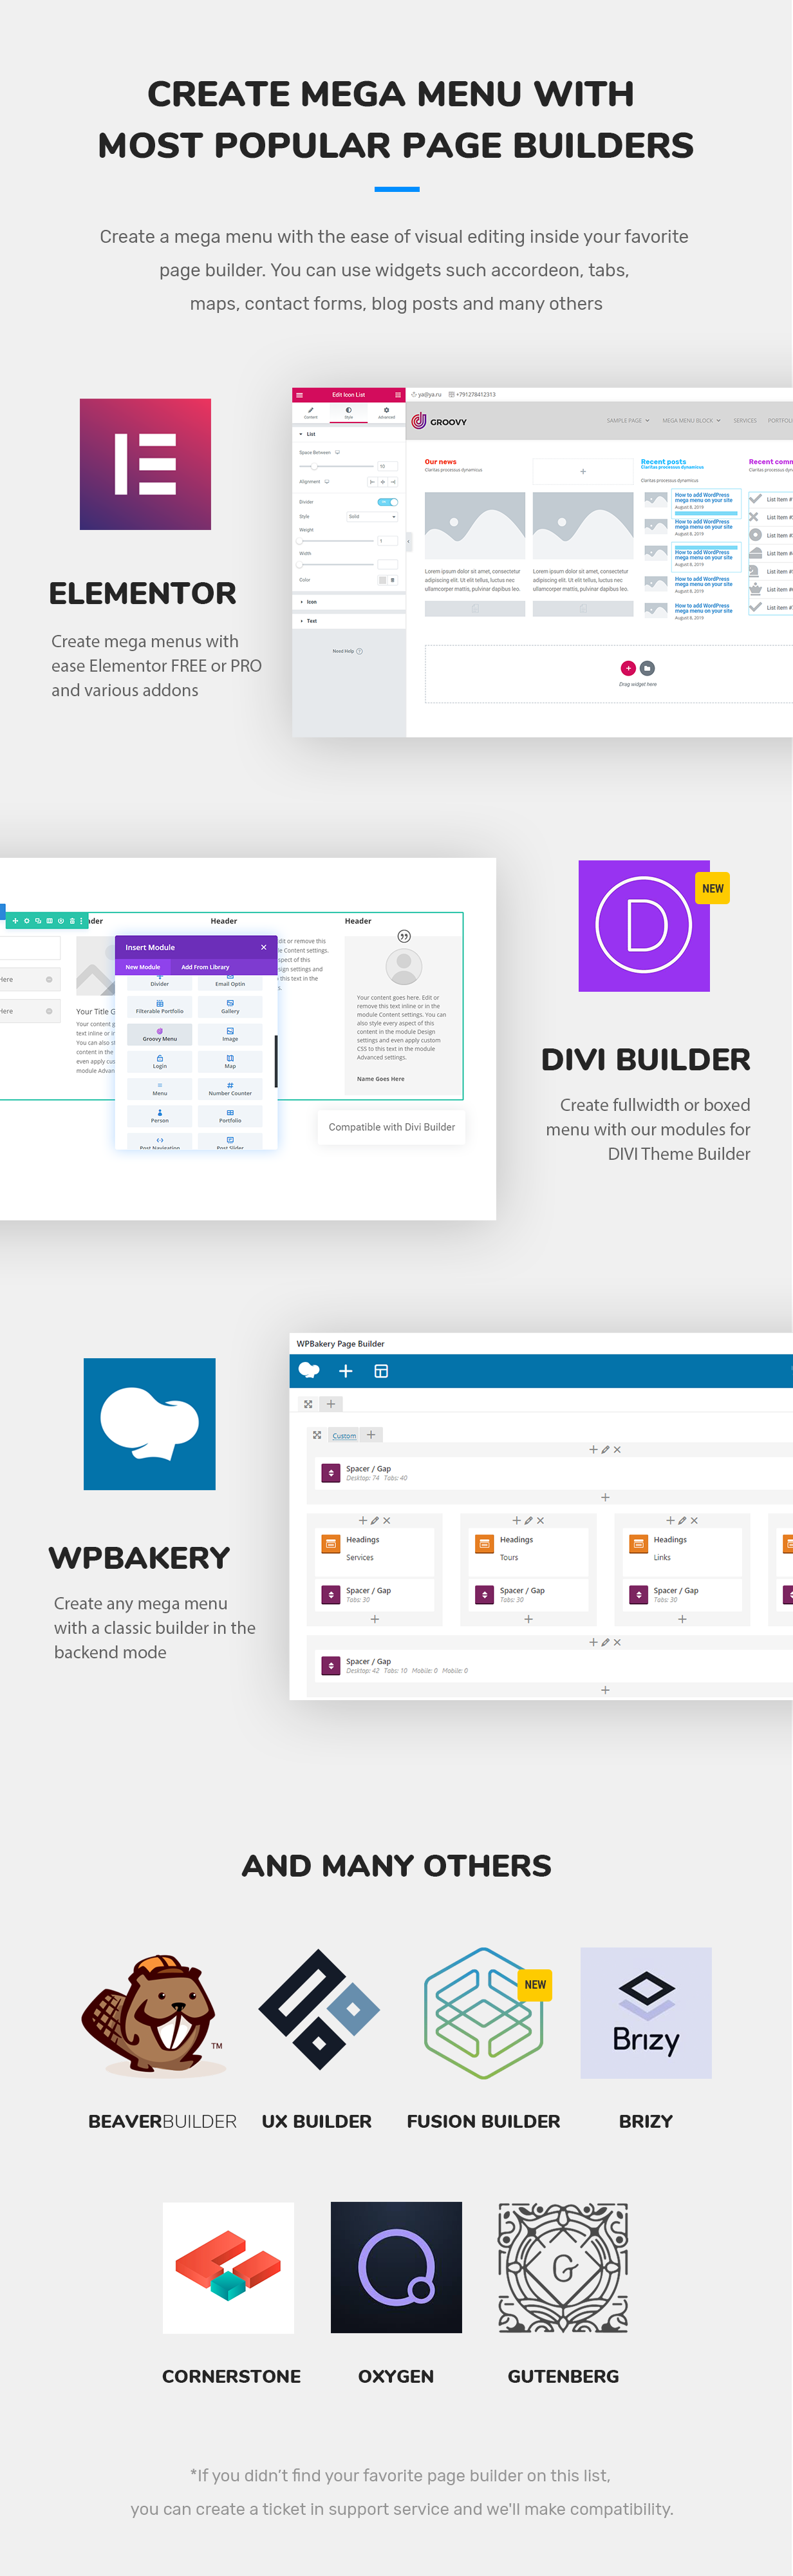 Groovy mega menu compatible page builders is a DIVI theme,  Elementor Free and PRO, WPBakery, Brizy, Oxygen, Theme Fusion, Gutenberg, Beaver Builder, UX Builder by Flatsome, Cornerstone